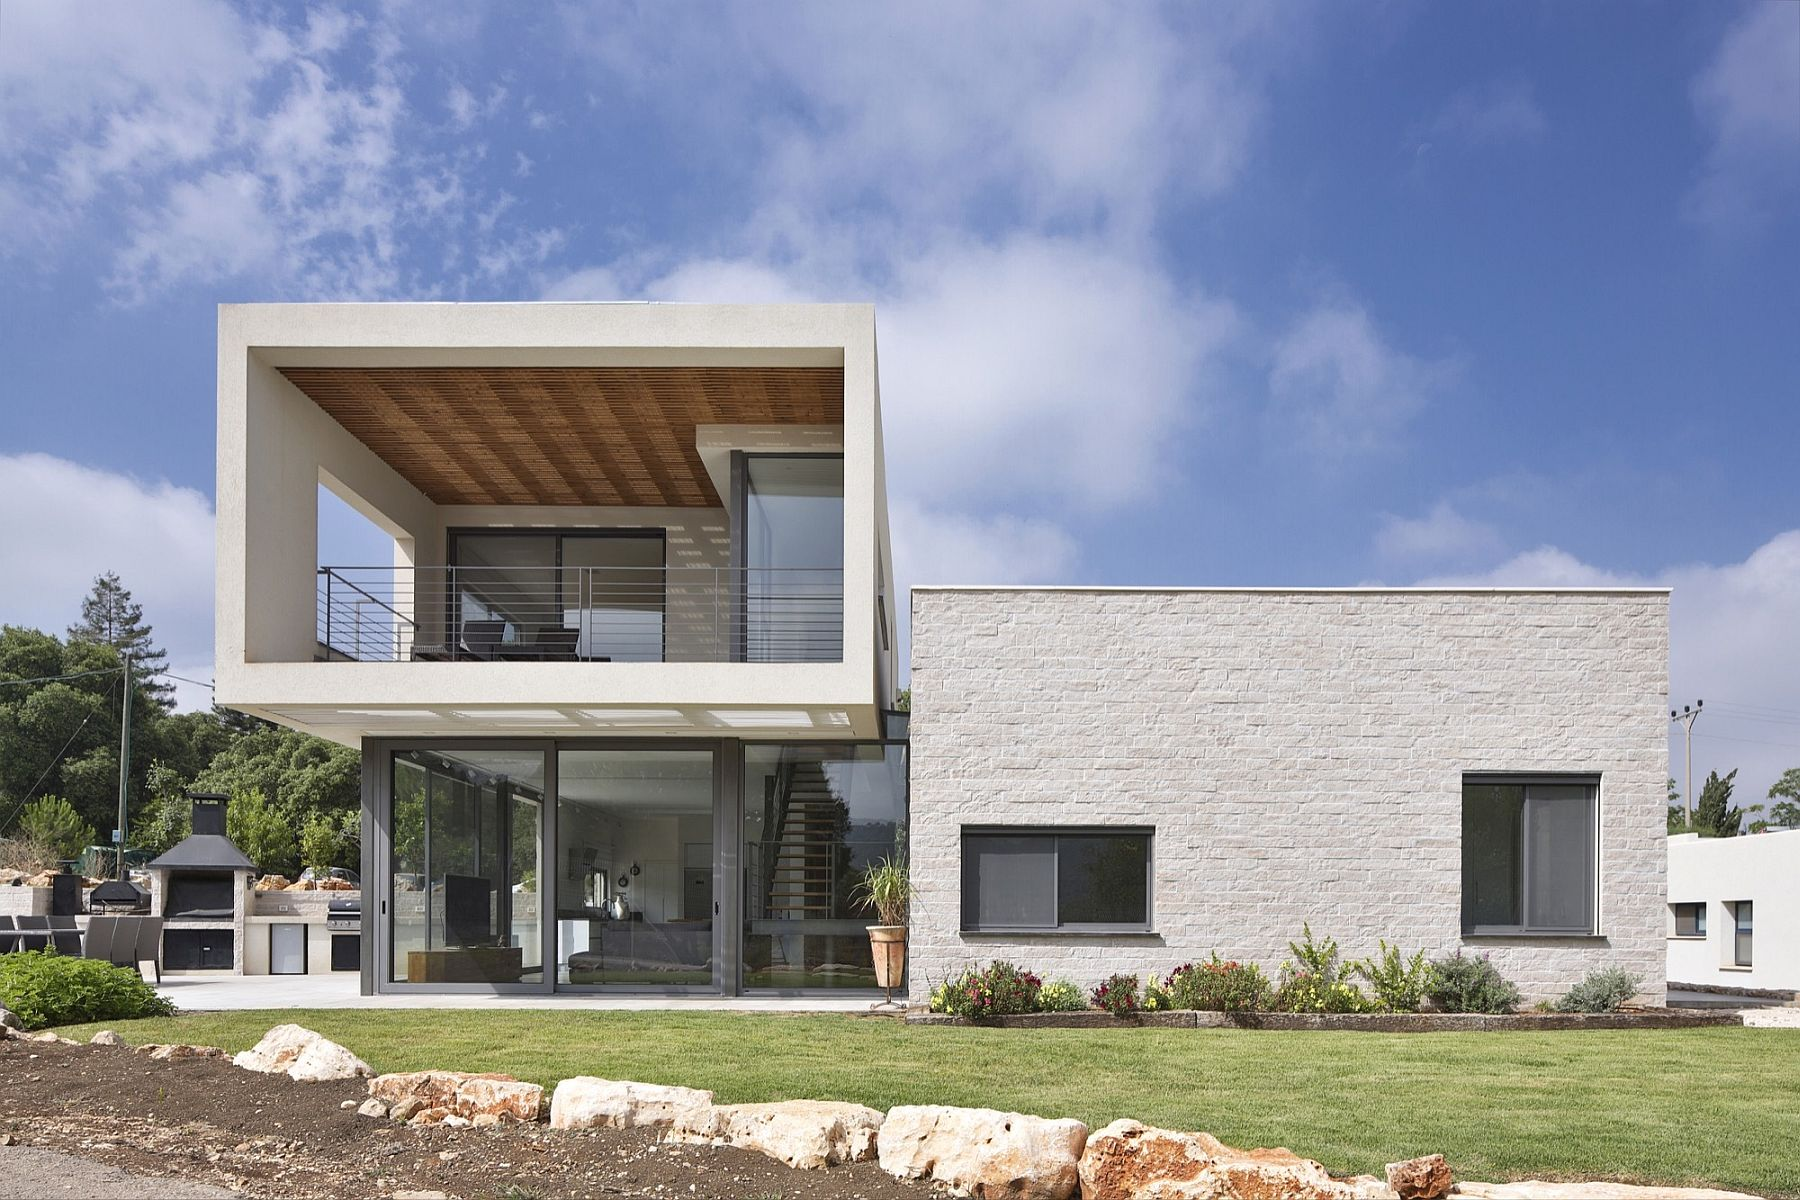 Rosenberg Golan and Ricky Home by SO Architecture in Israel